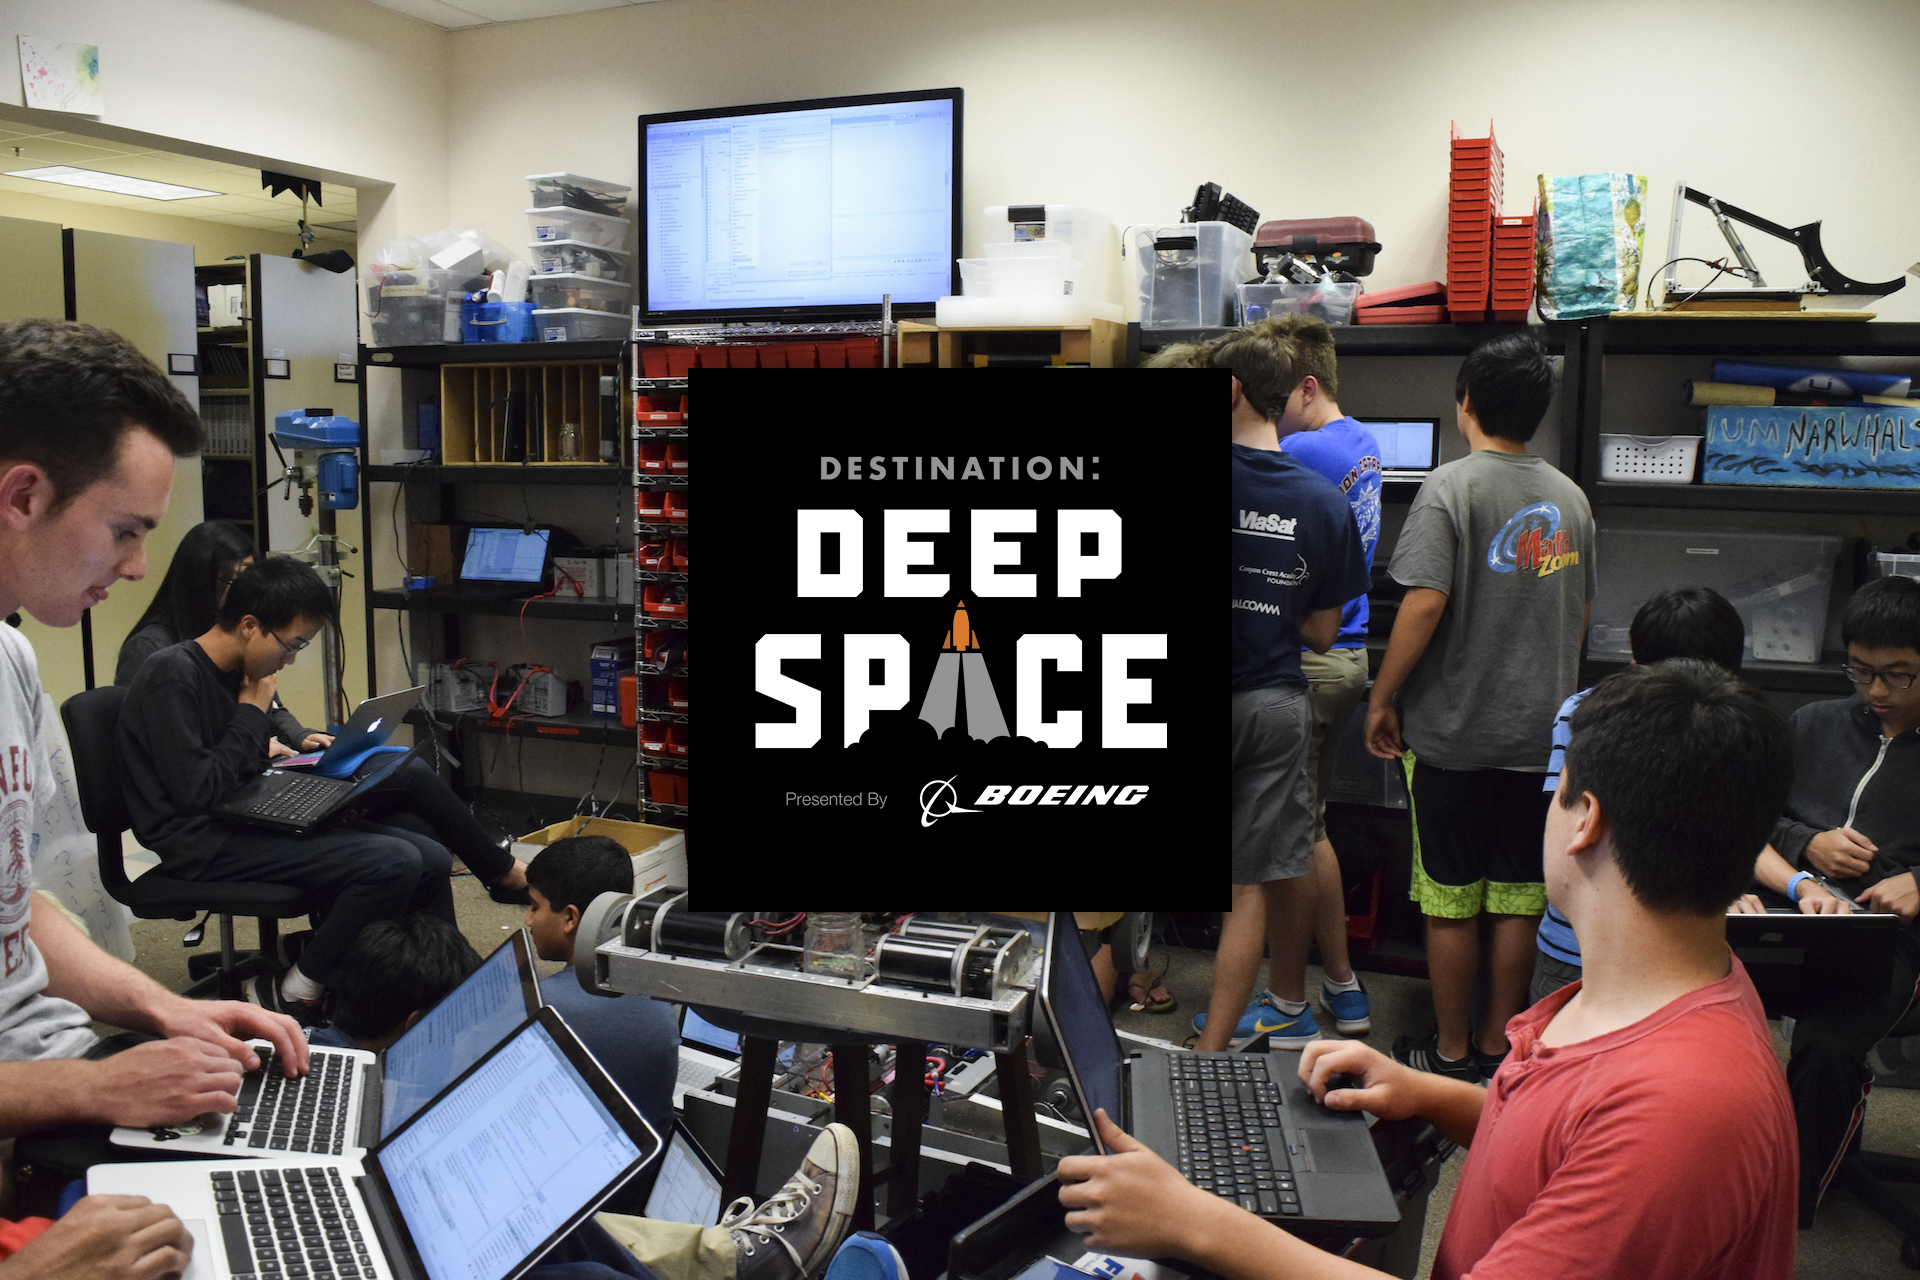 c633a9a97 On January 5th at 7:00am, FIRST released the 2019 FIRST Robotics  Competition game: DESTINATION: DEEP SPACE. Learn more about our new  challenge here!